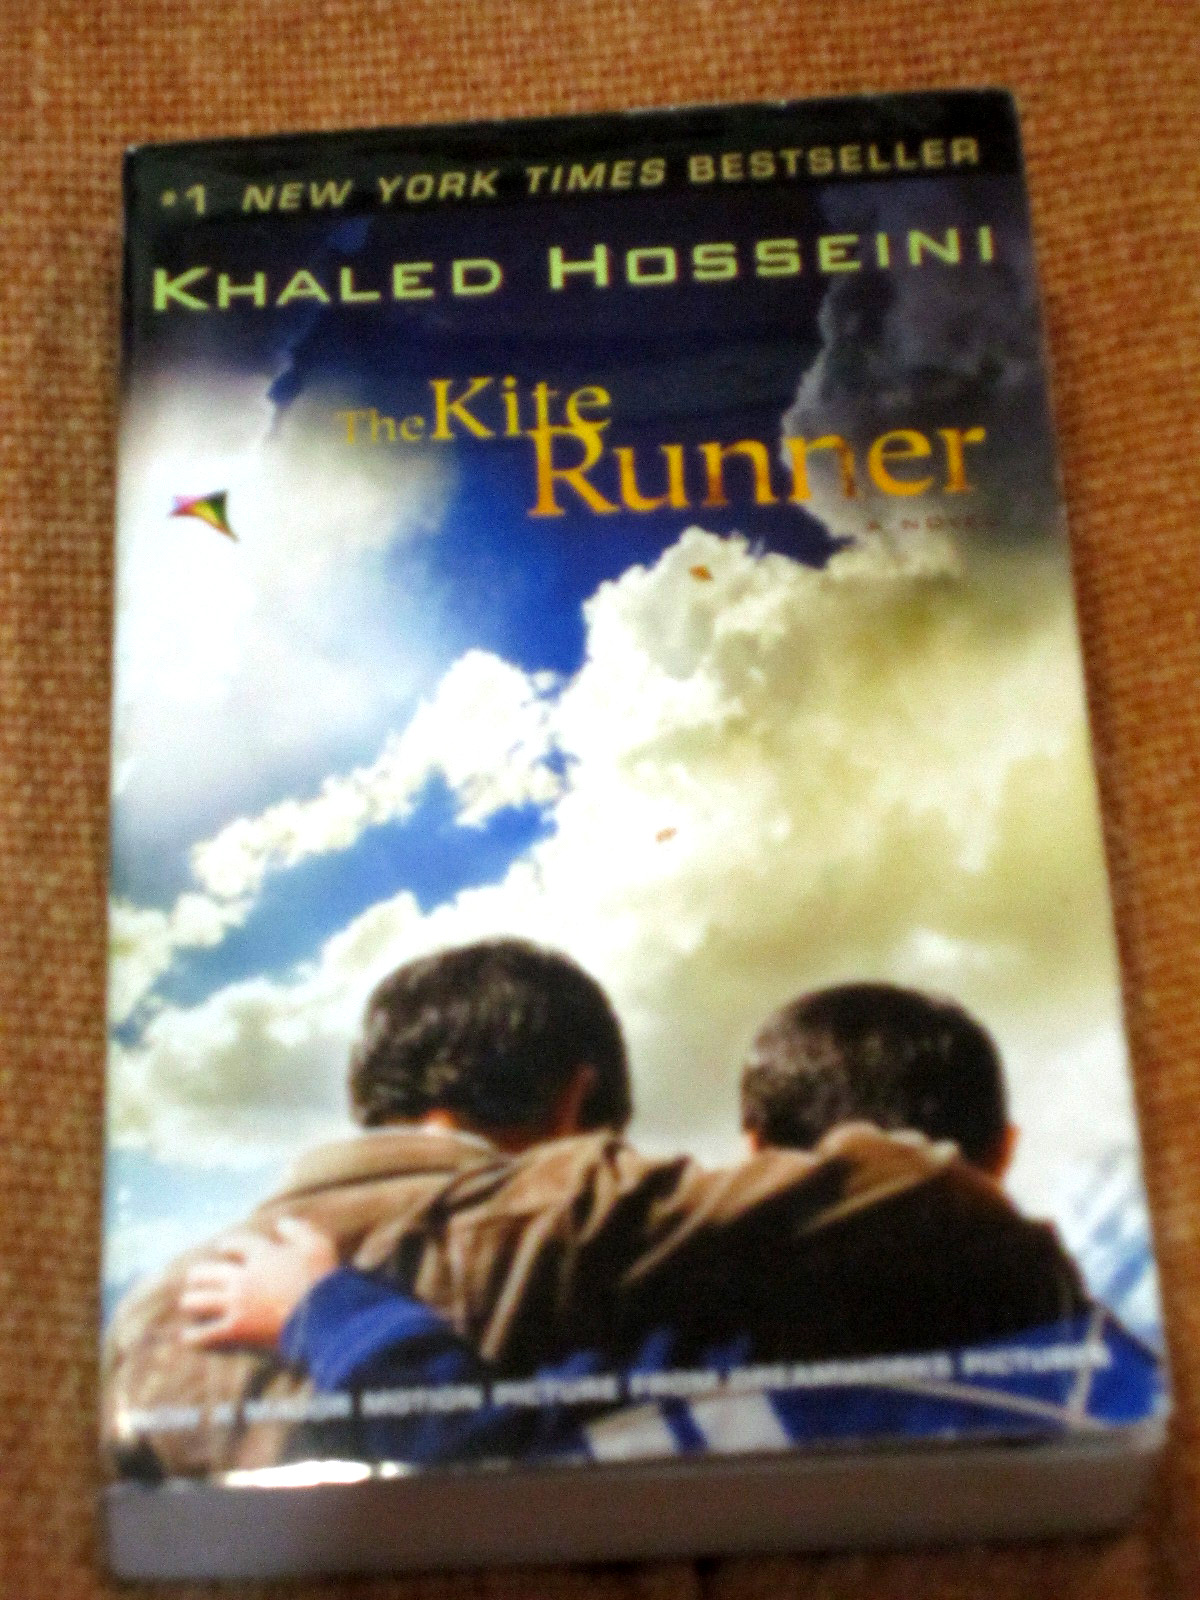 escapist ojaesama book review the kite runner book title the kite runner author khaled hosseini